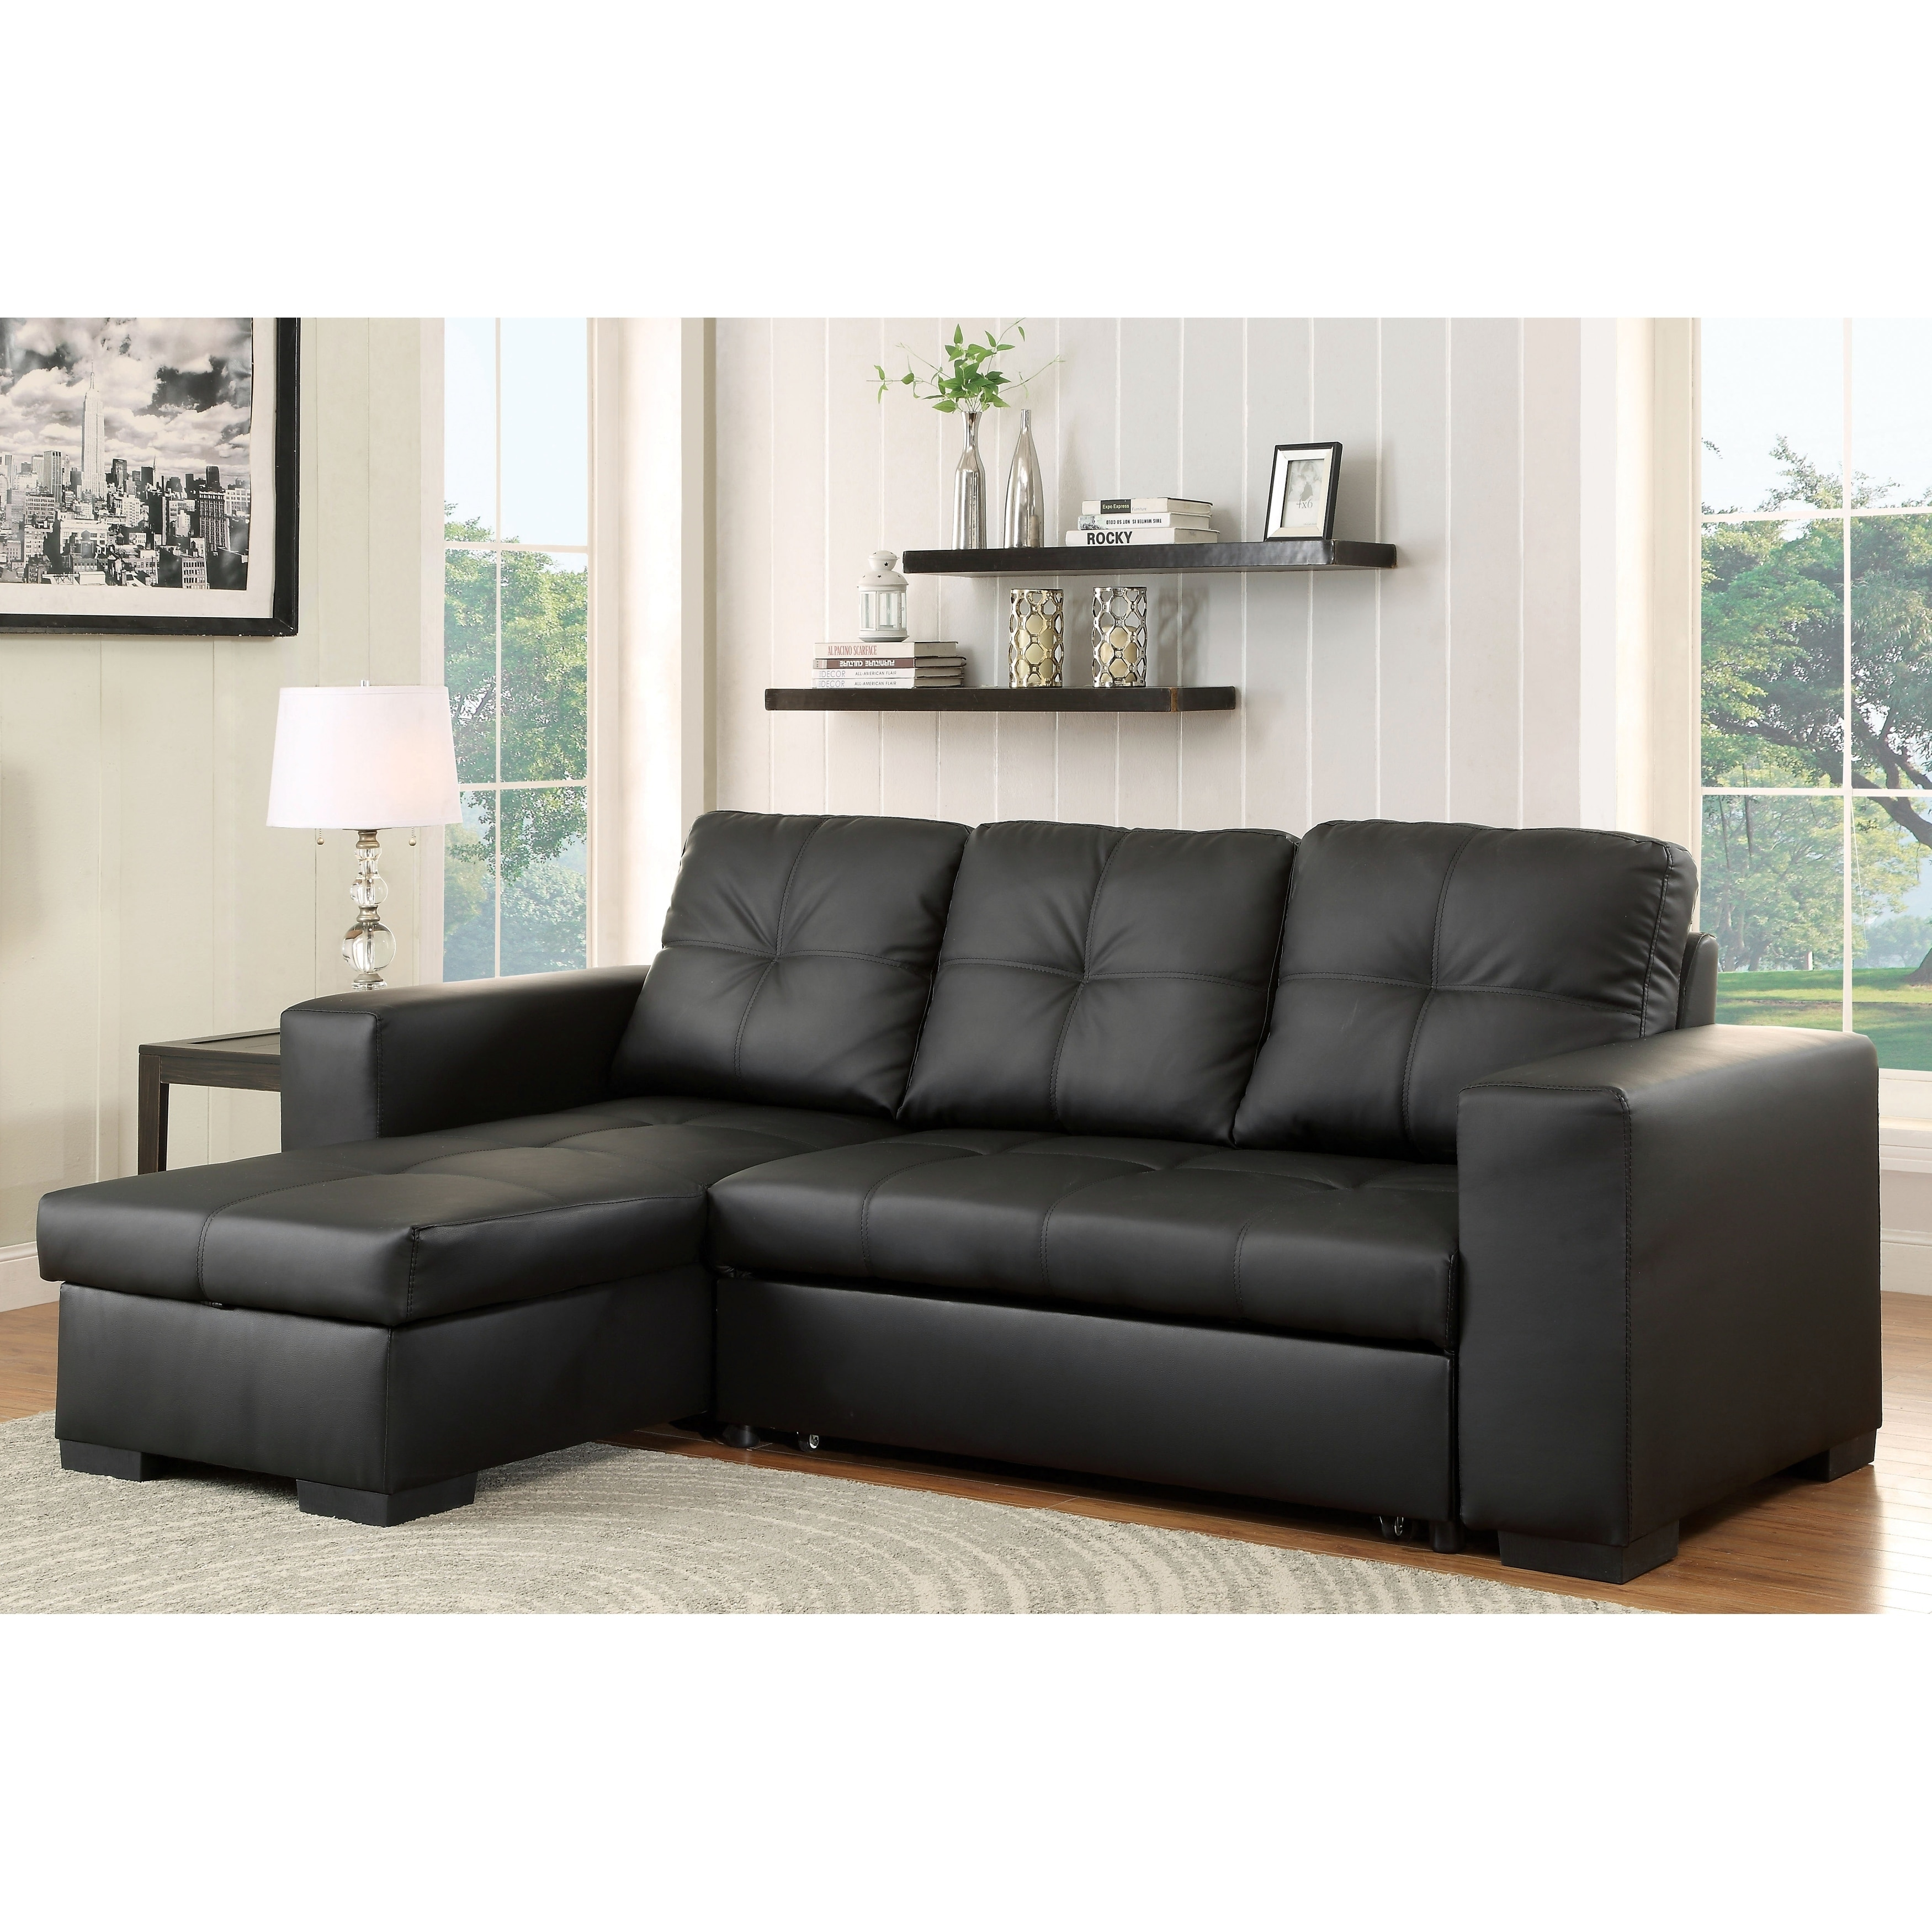 Sagel Contemporary 2 Piece Sectional By Foa On Free Shipping Today 10383176